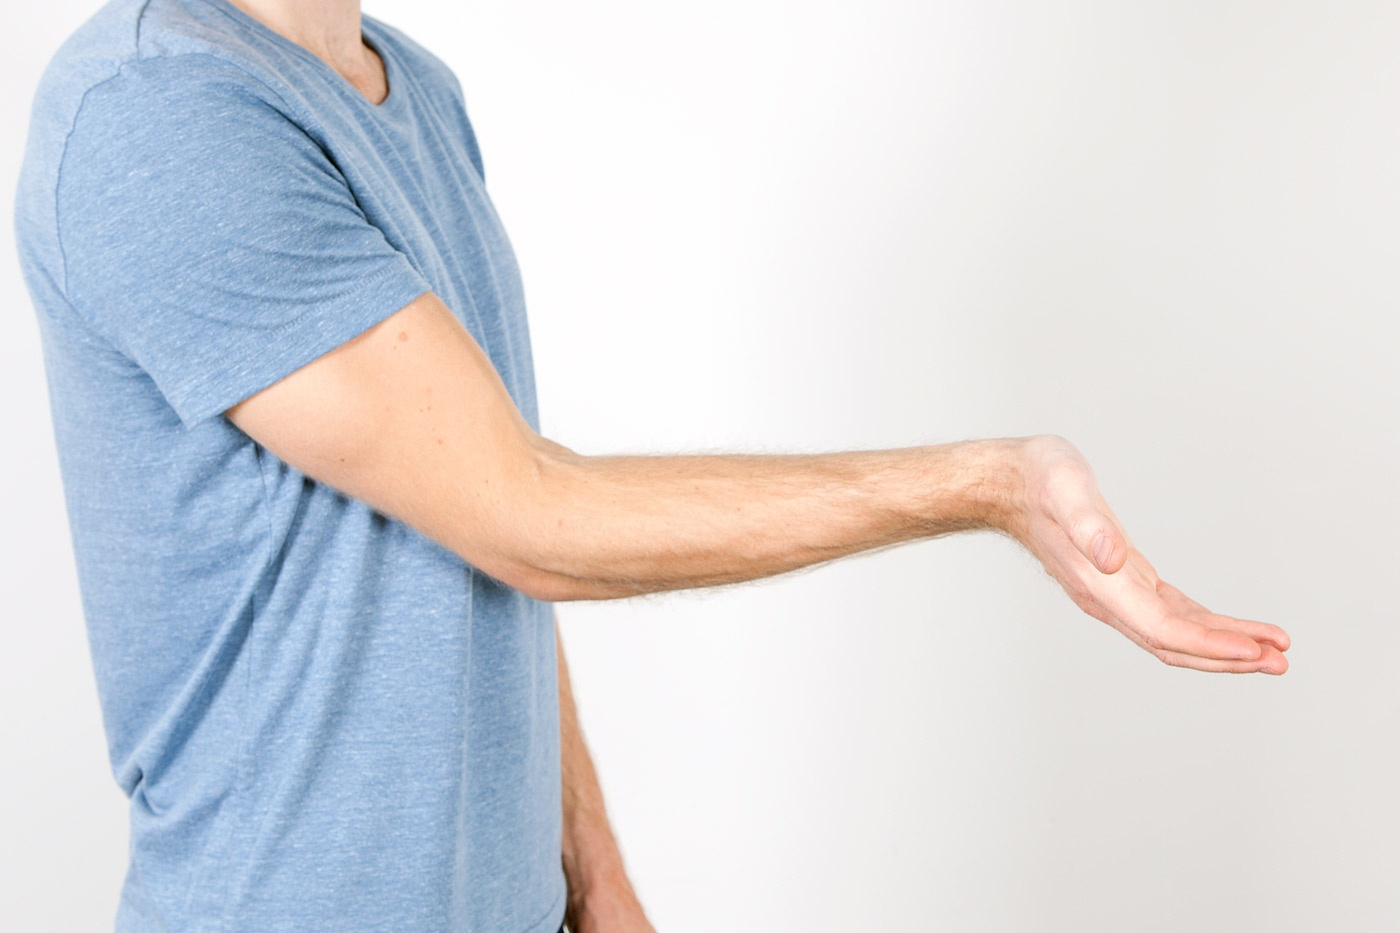 Check for tennis elbow